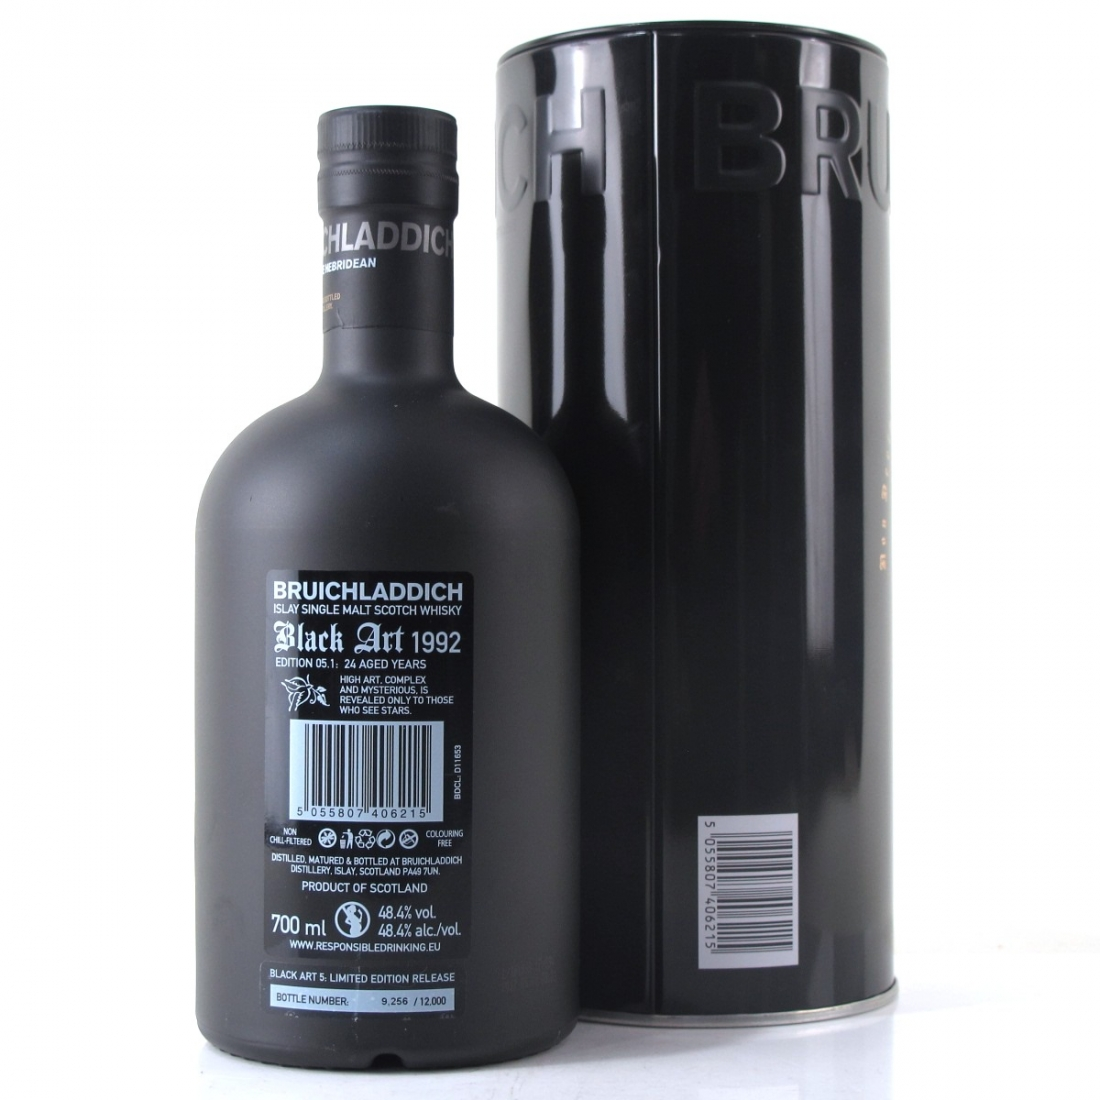 Bruichladdich 1992 Black Art 24 Year Old 5.1 Edition